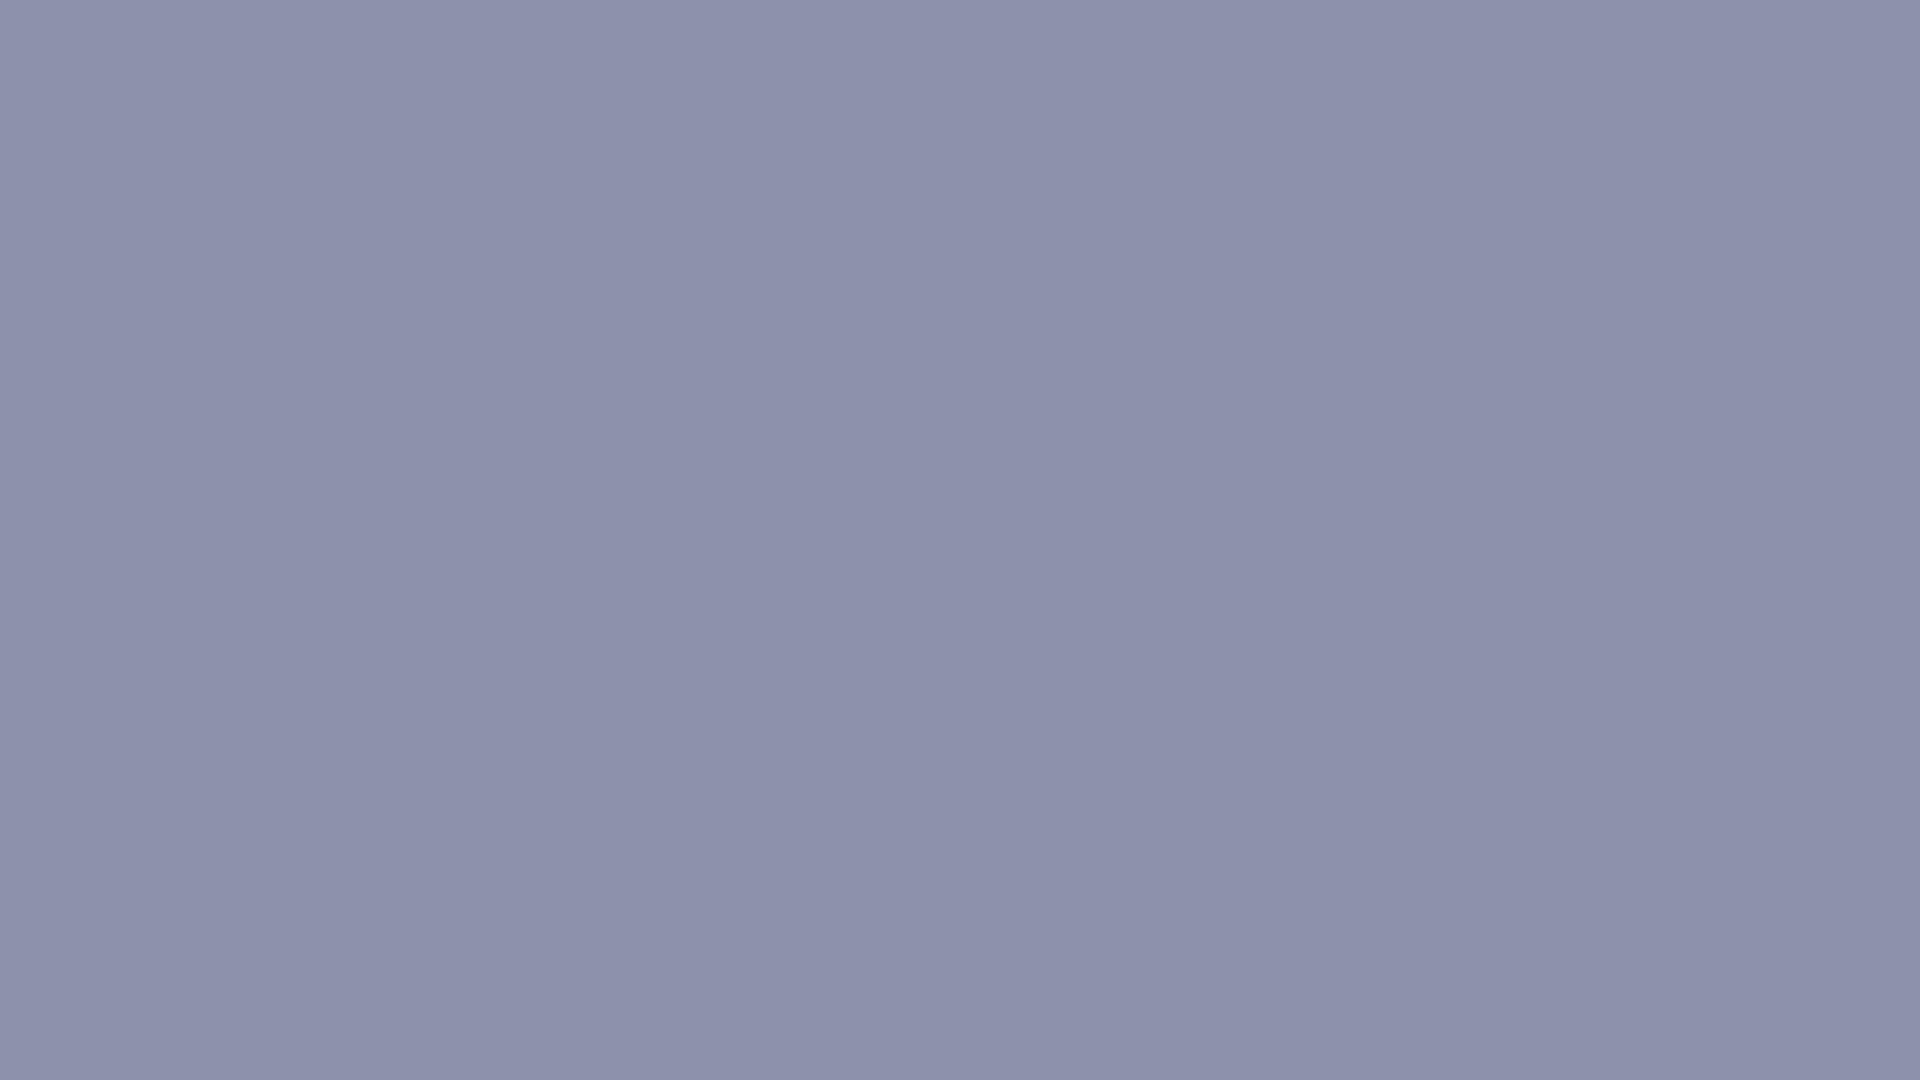 1920x1080 Gray-blue Solid Color Background